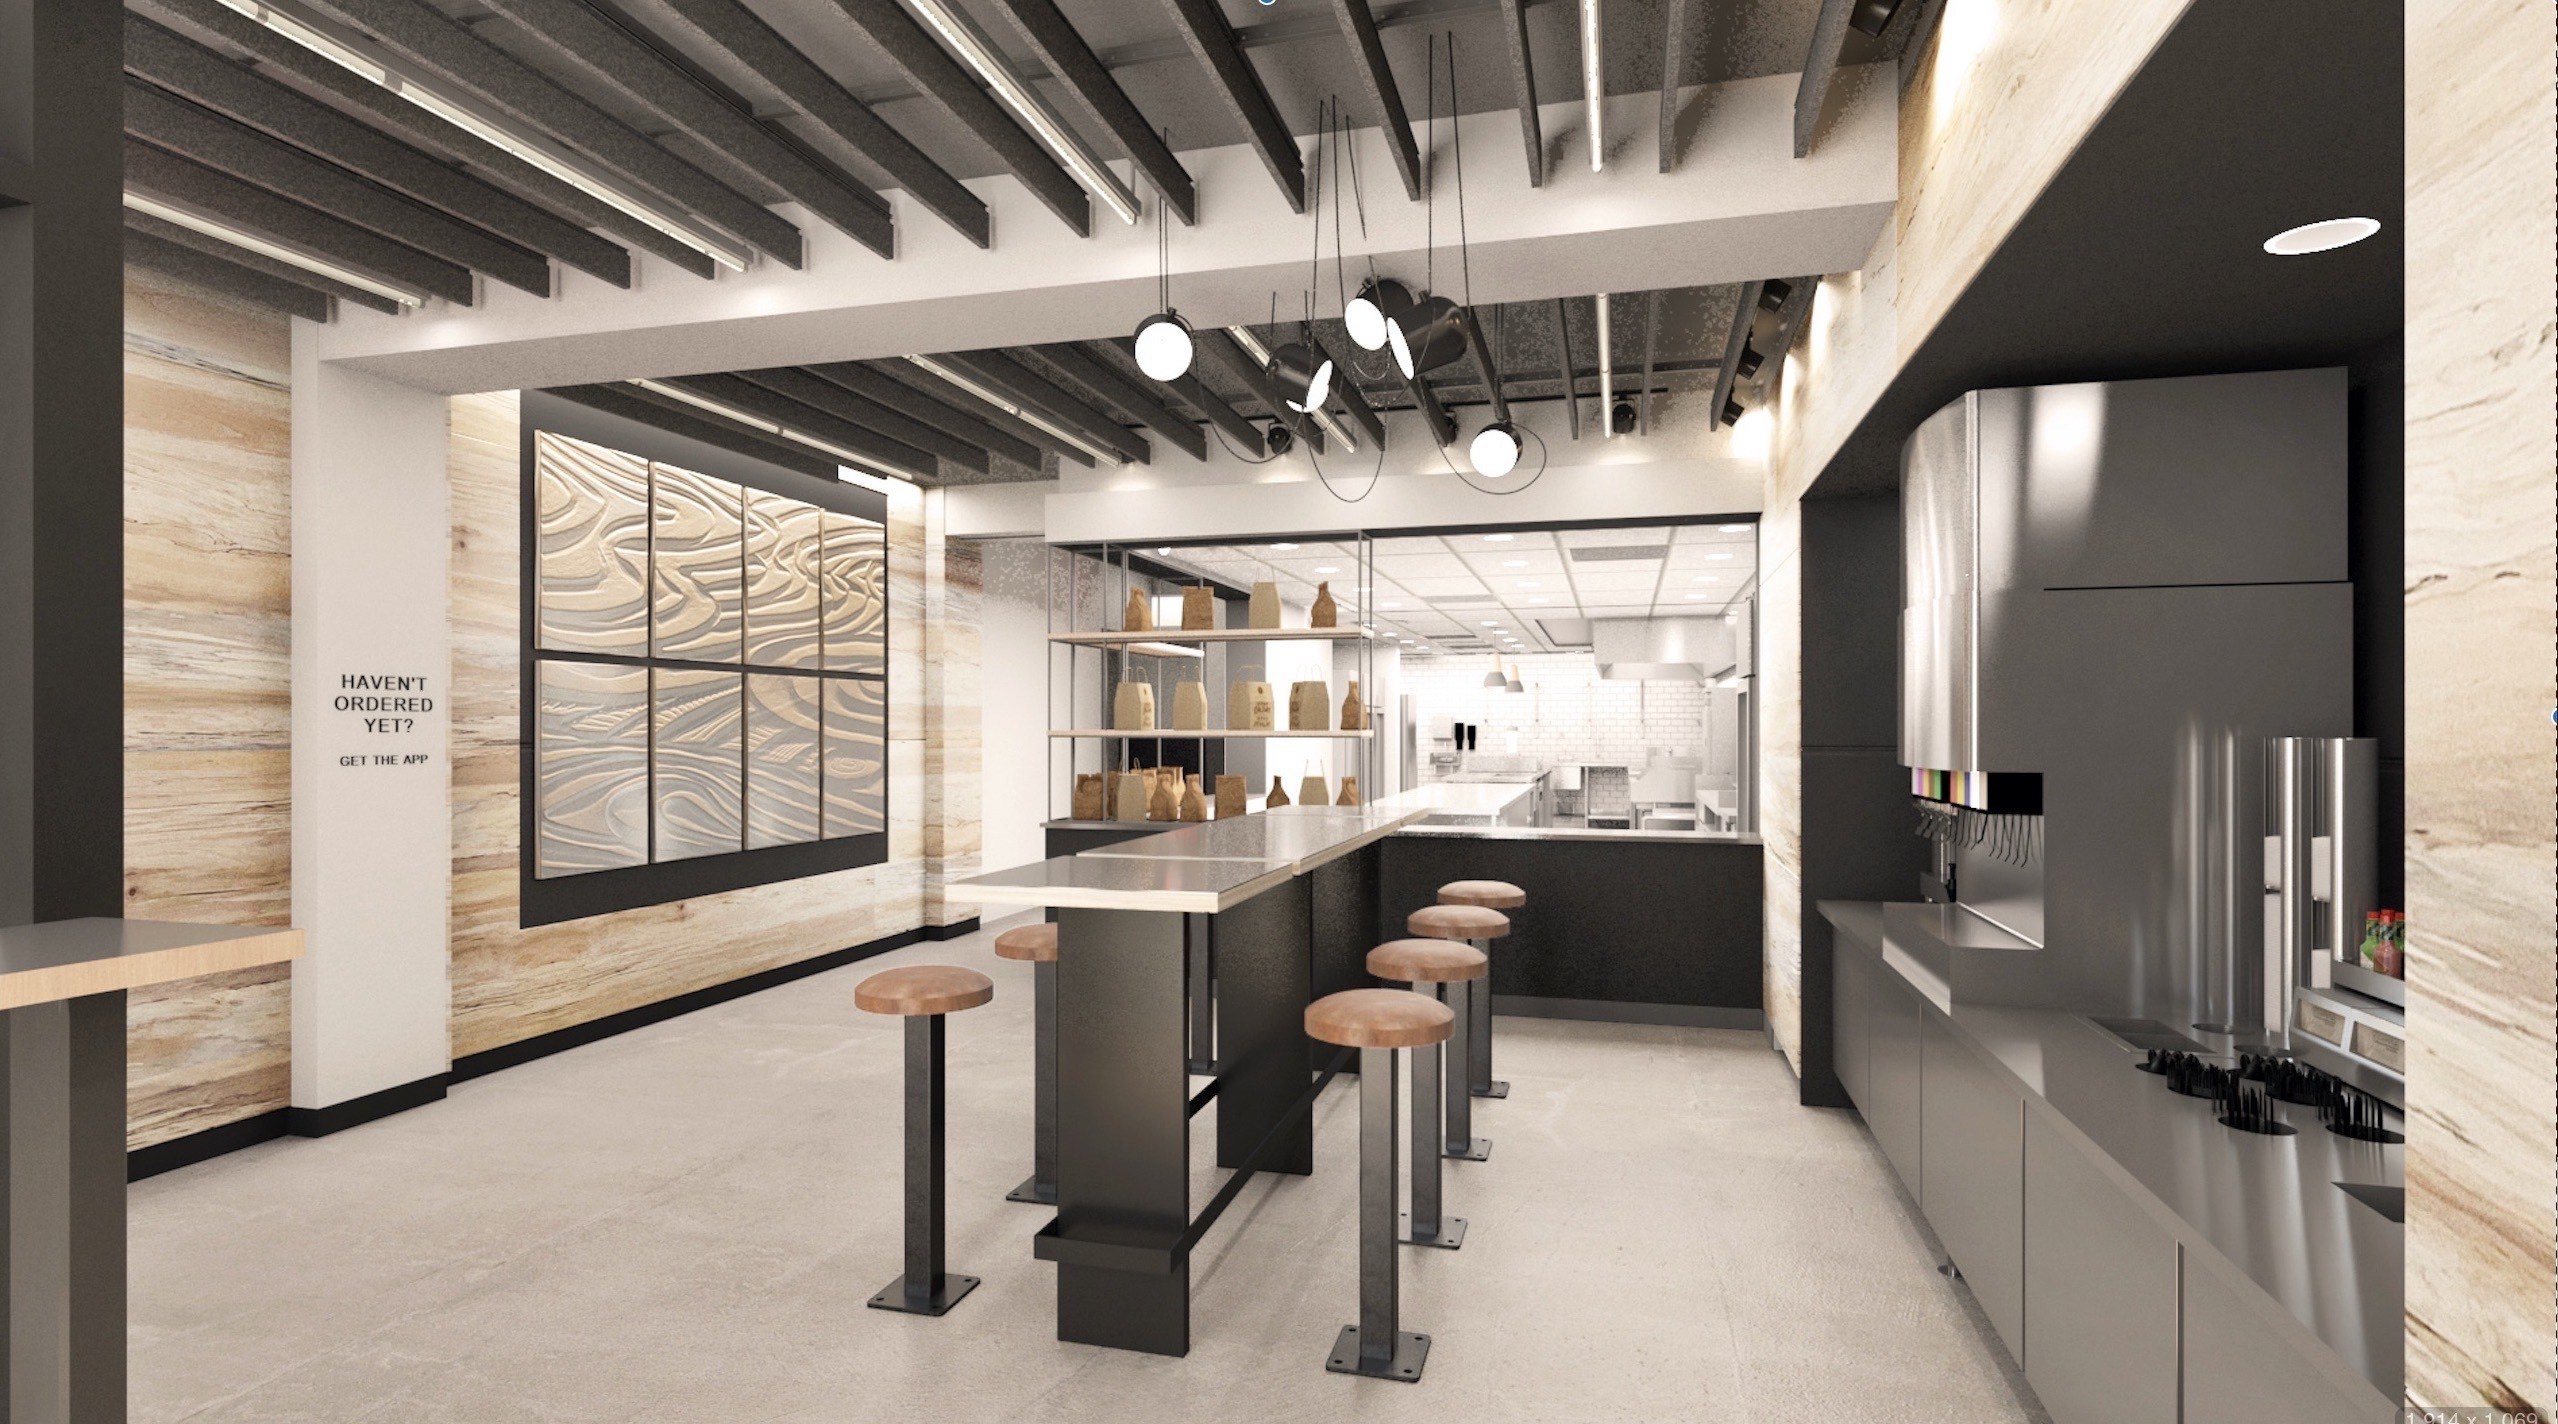 Chipotle has introduced its first-ever digital-only restaurant called the Chipotle Digital Kitchen. The new restaurant is located just outside the gates to the military academy in Highland Falls, NY and will open on Saturday, November 14 for pick-up and delivery only. (from Chipotle)